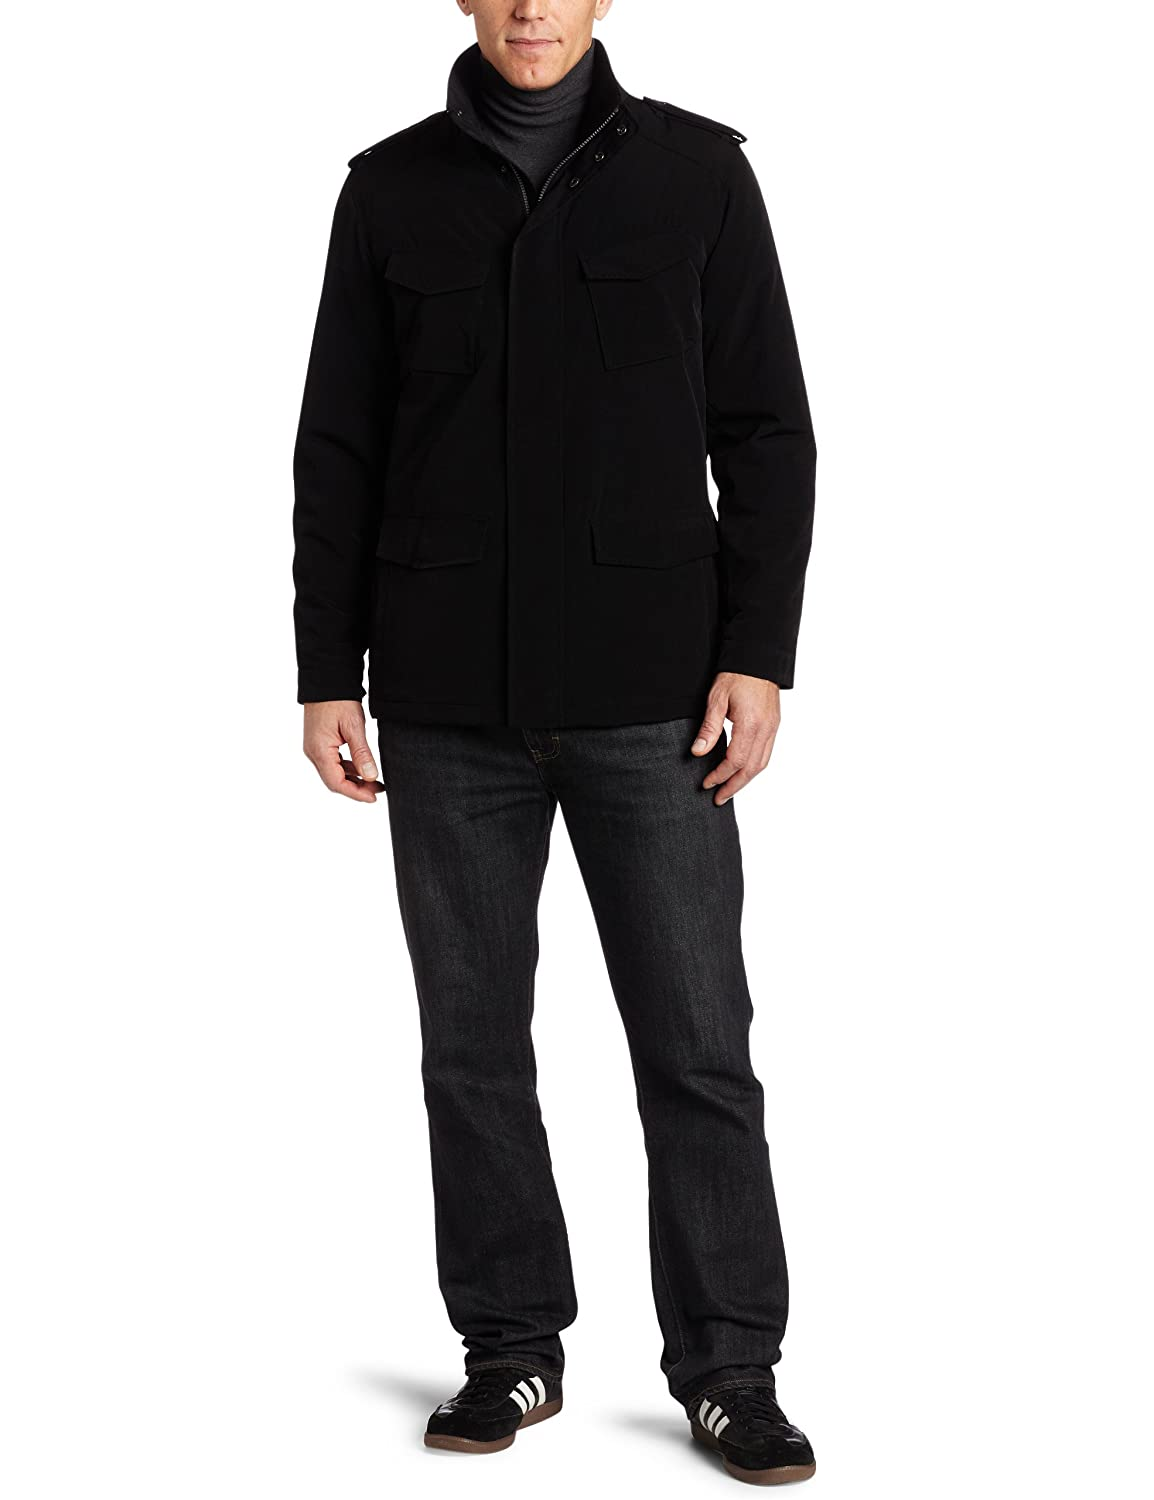 Perry Ellis Portfolio Men&#8217;s Polytech Military Jacket, Black, Large $32.96